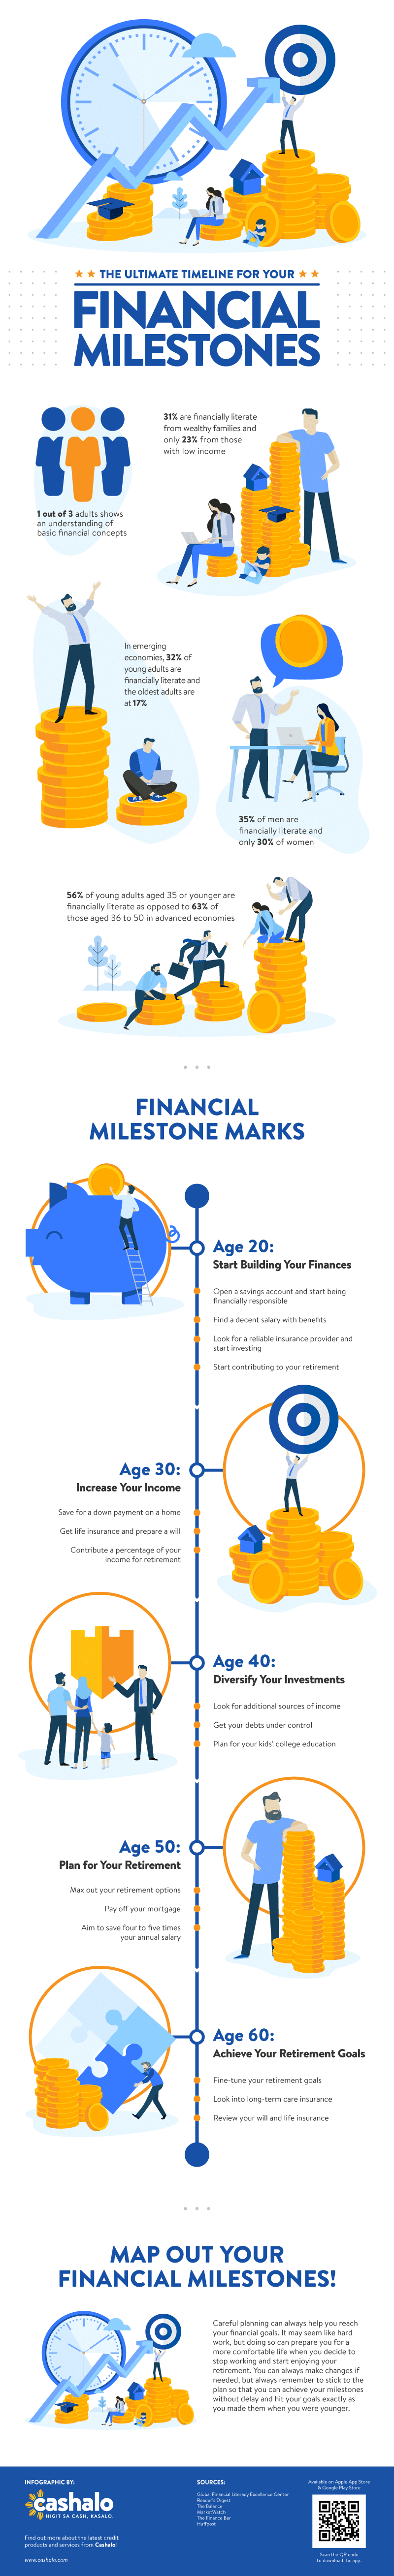 Financial Milestones -Timeline